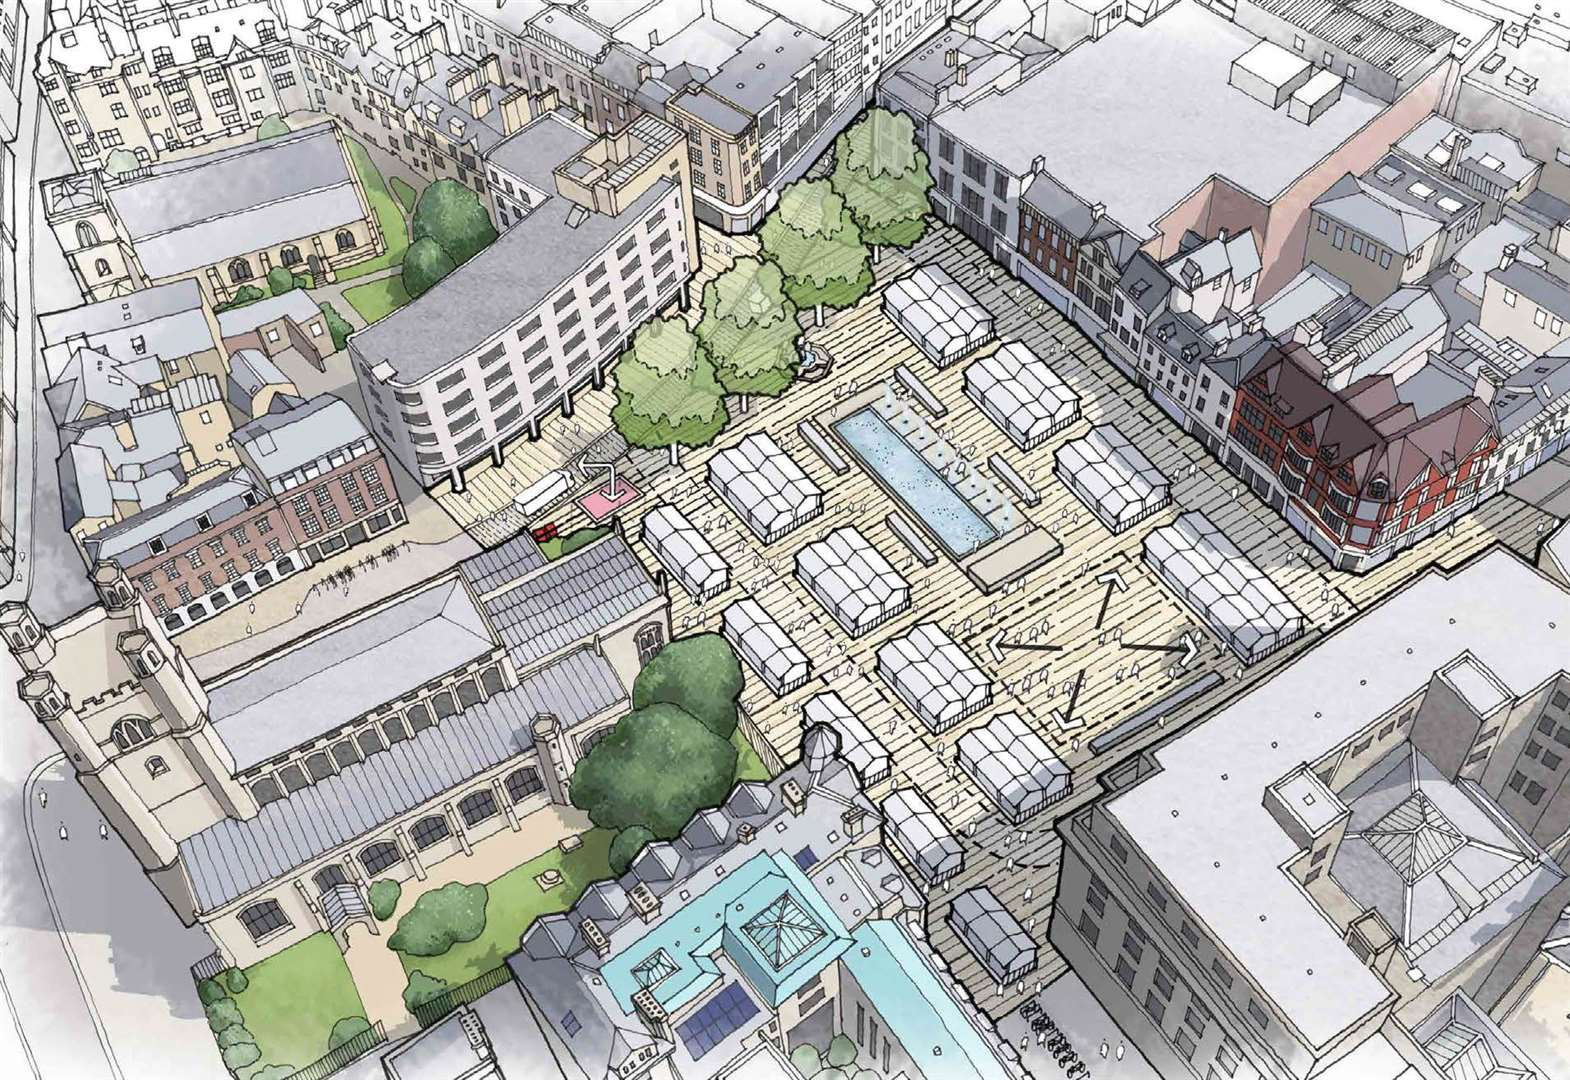 Private investors could fund market redevelopment